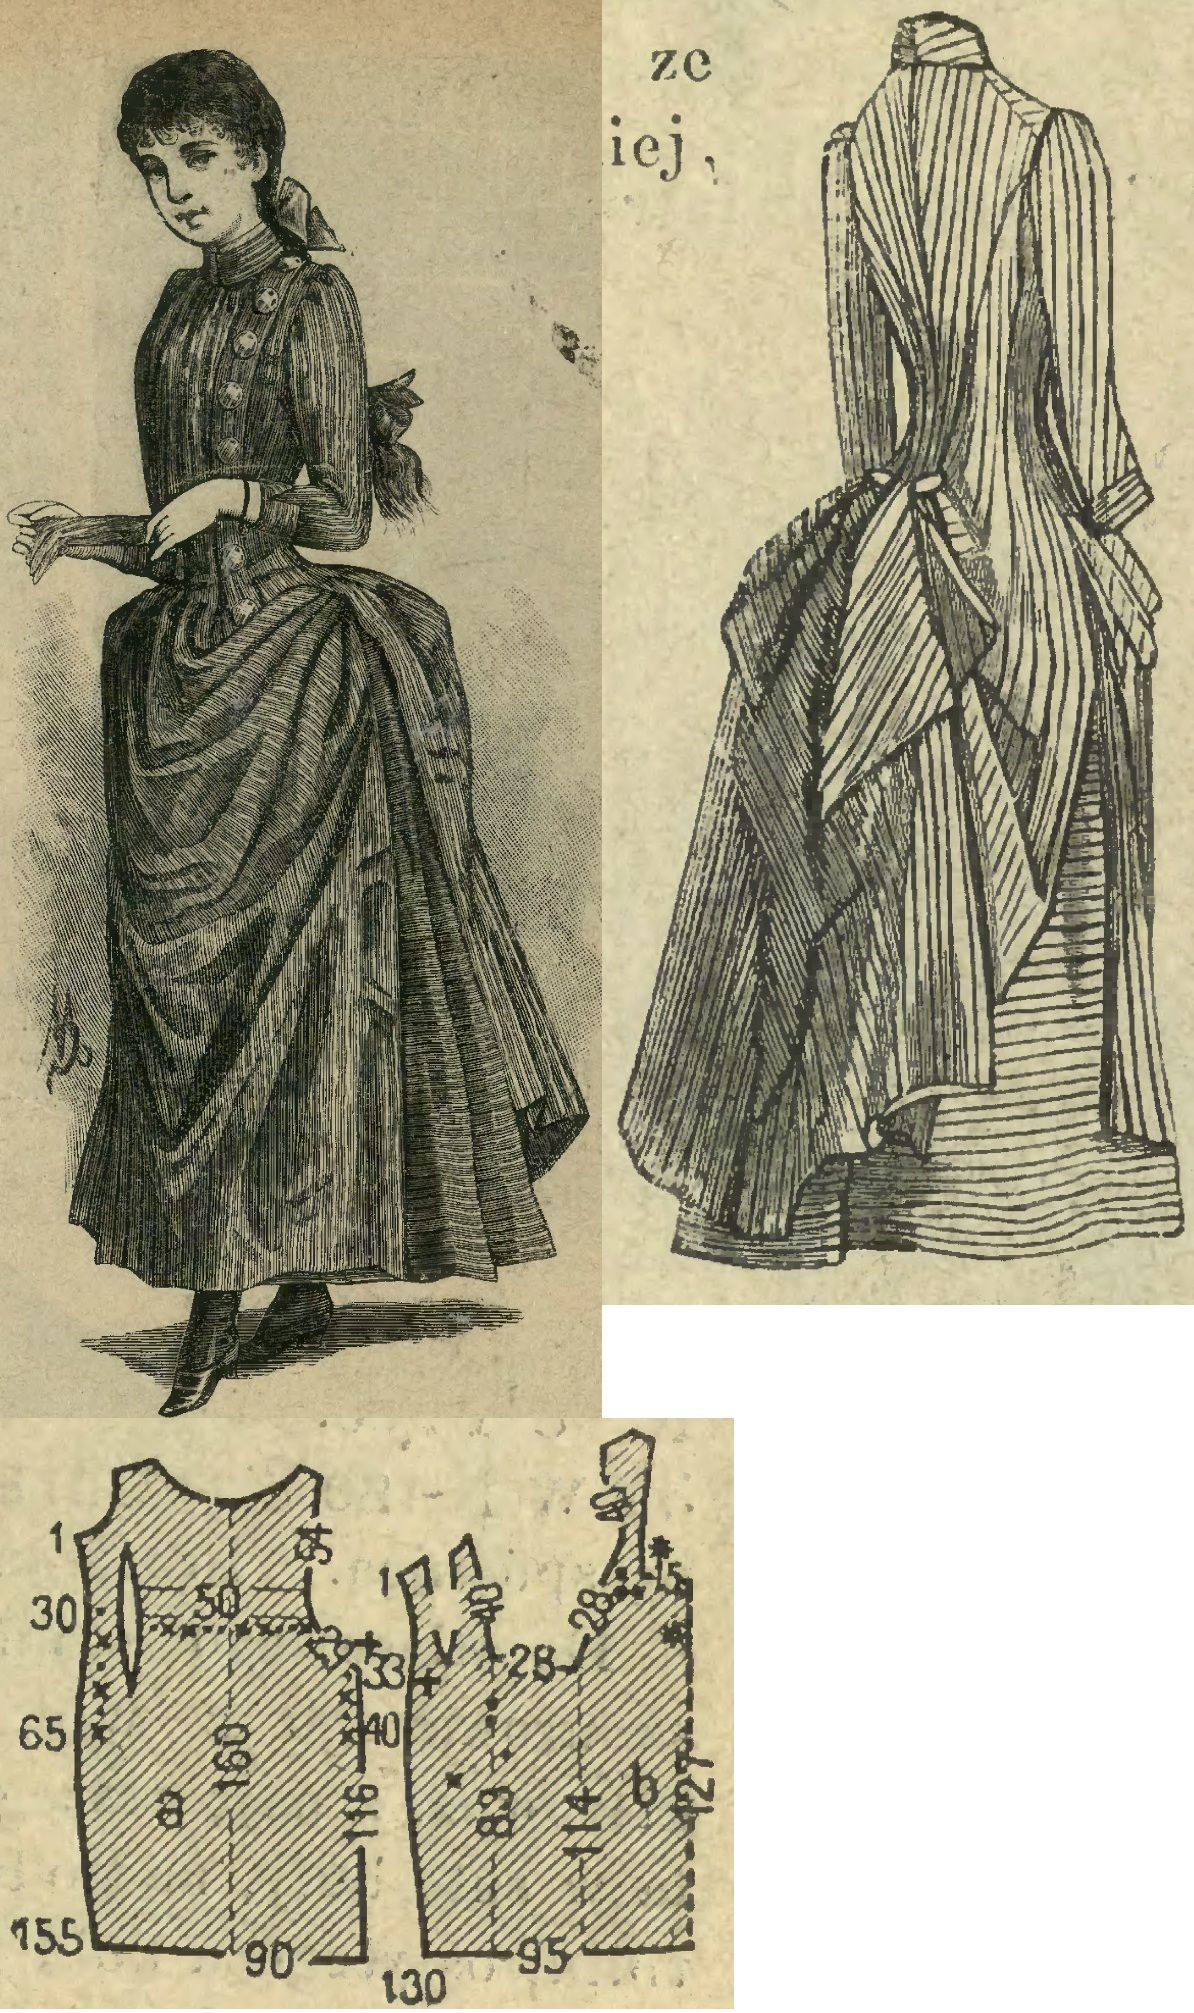 Tygodnik Mód 1888.: Misses' overdress from red&white striped cotton.